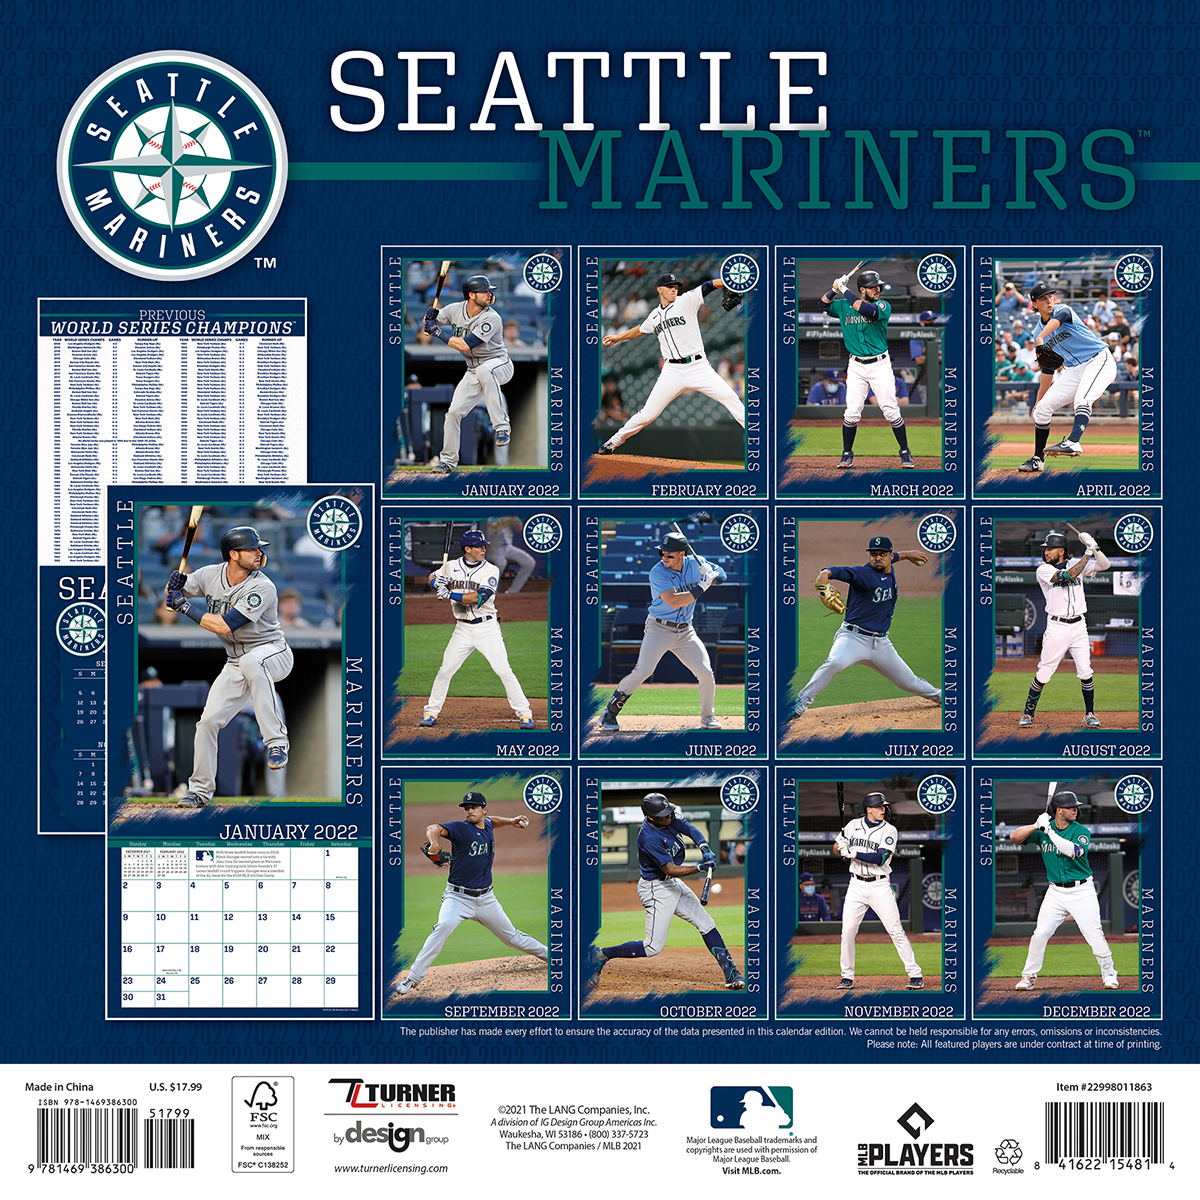 Seattle Mariners 2018 Wall Calendar - Buy at KHC Sports